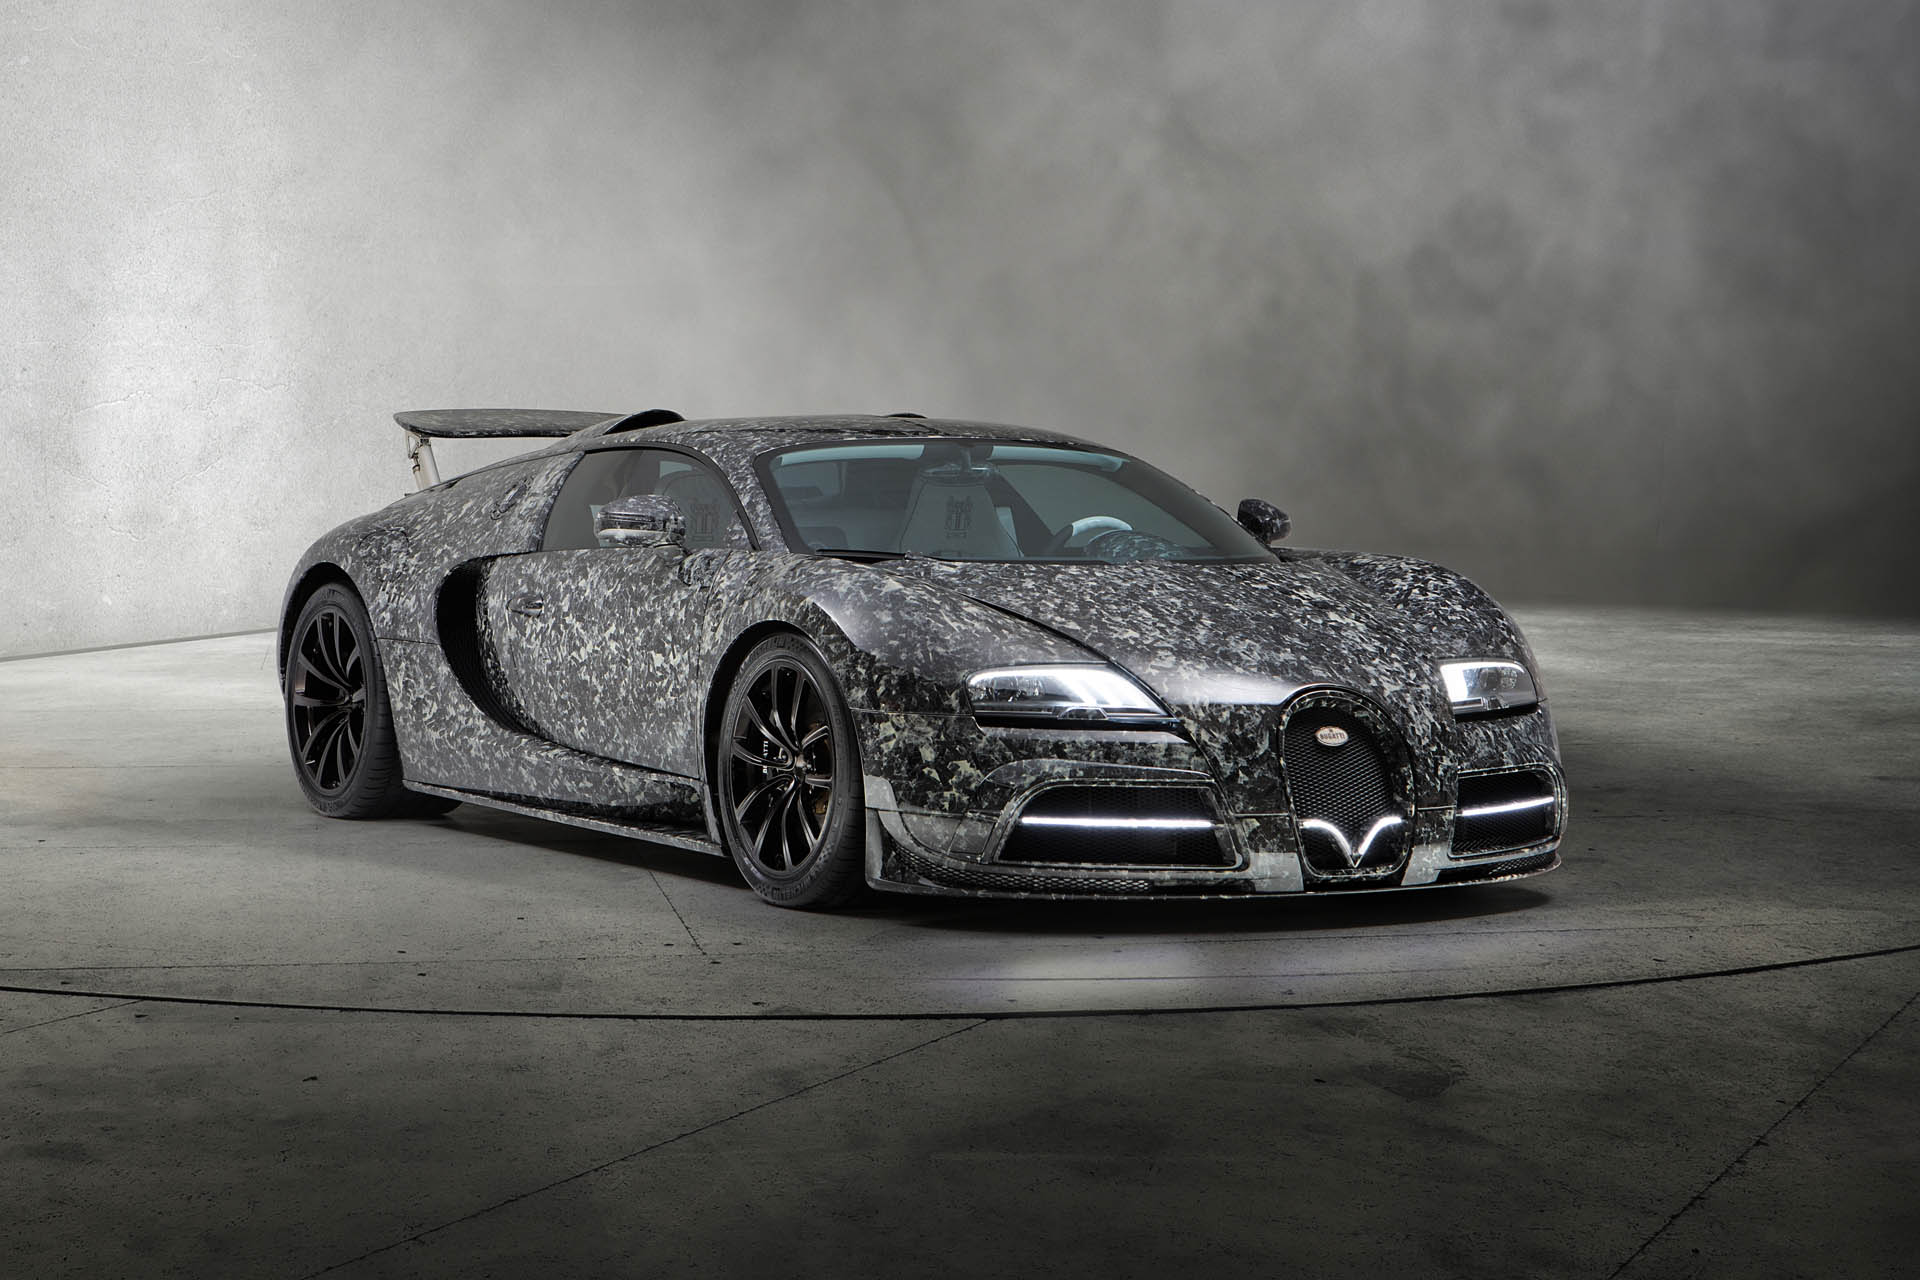 mansory_vivere_diamond_edition_01